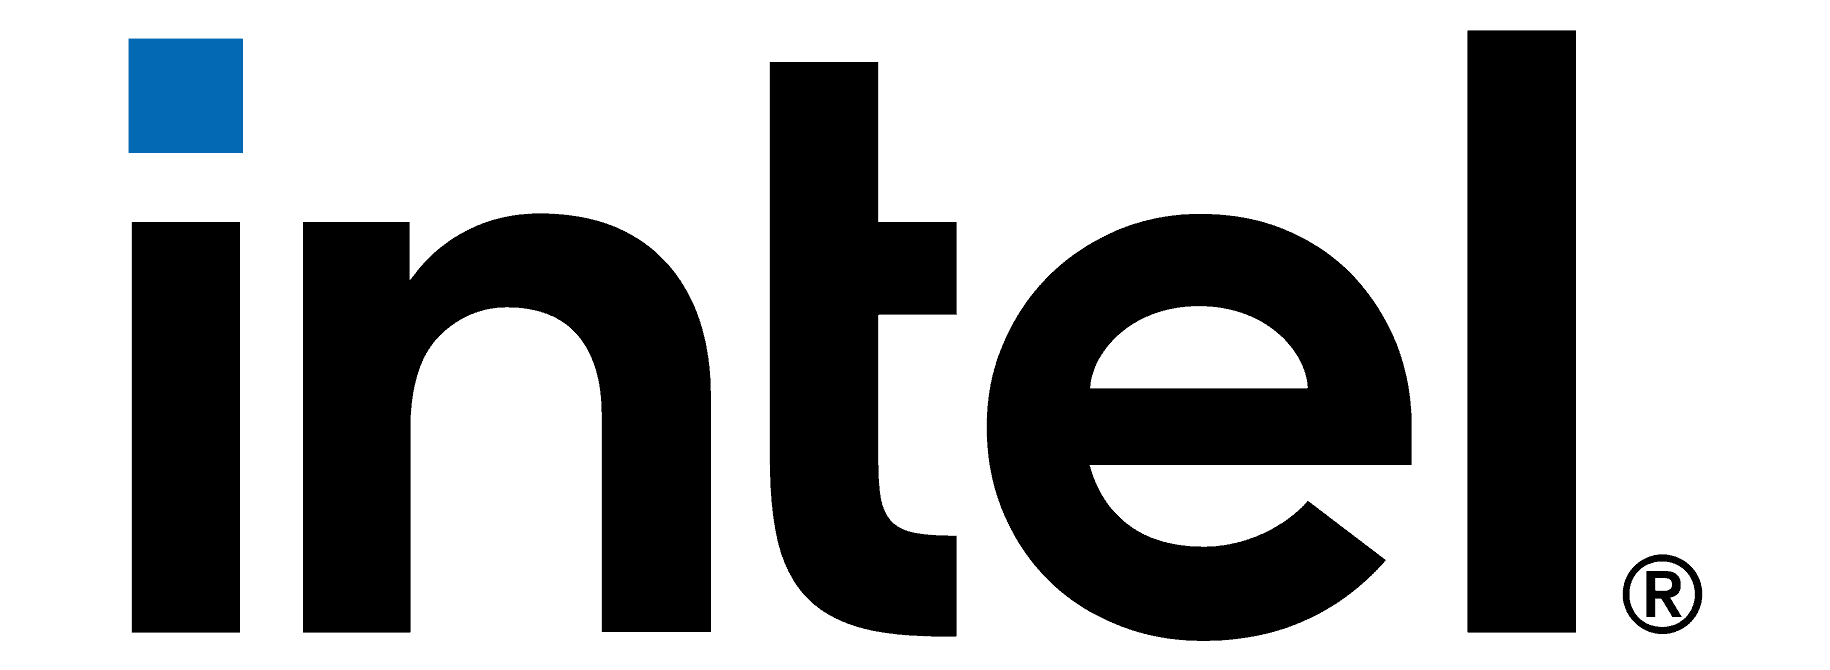 Intel - Potential - Empower Clients